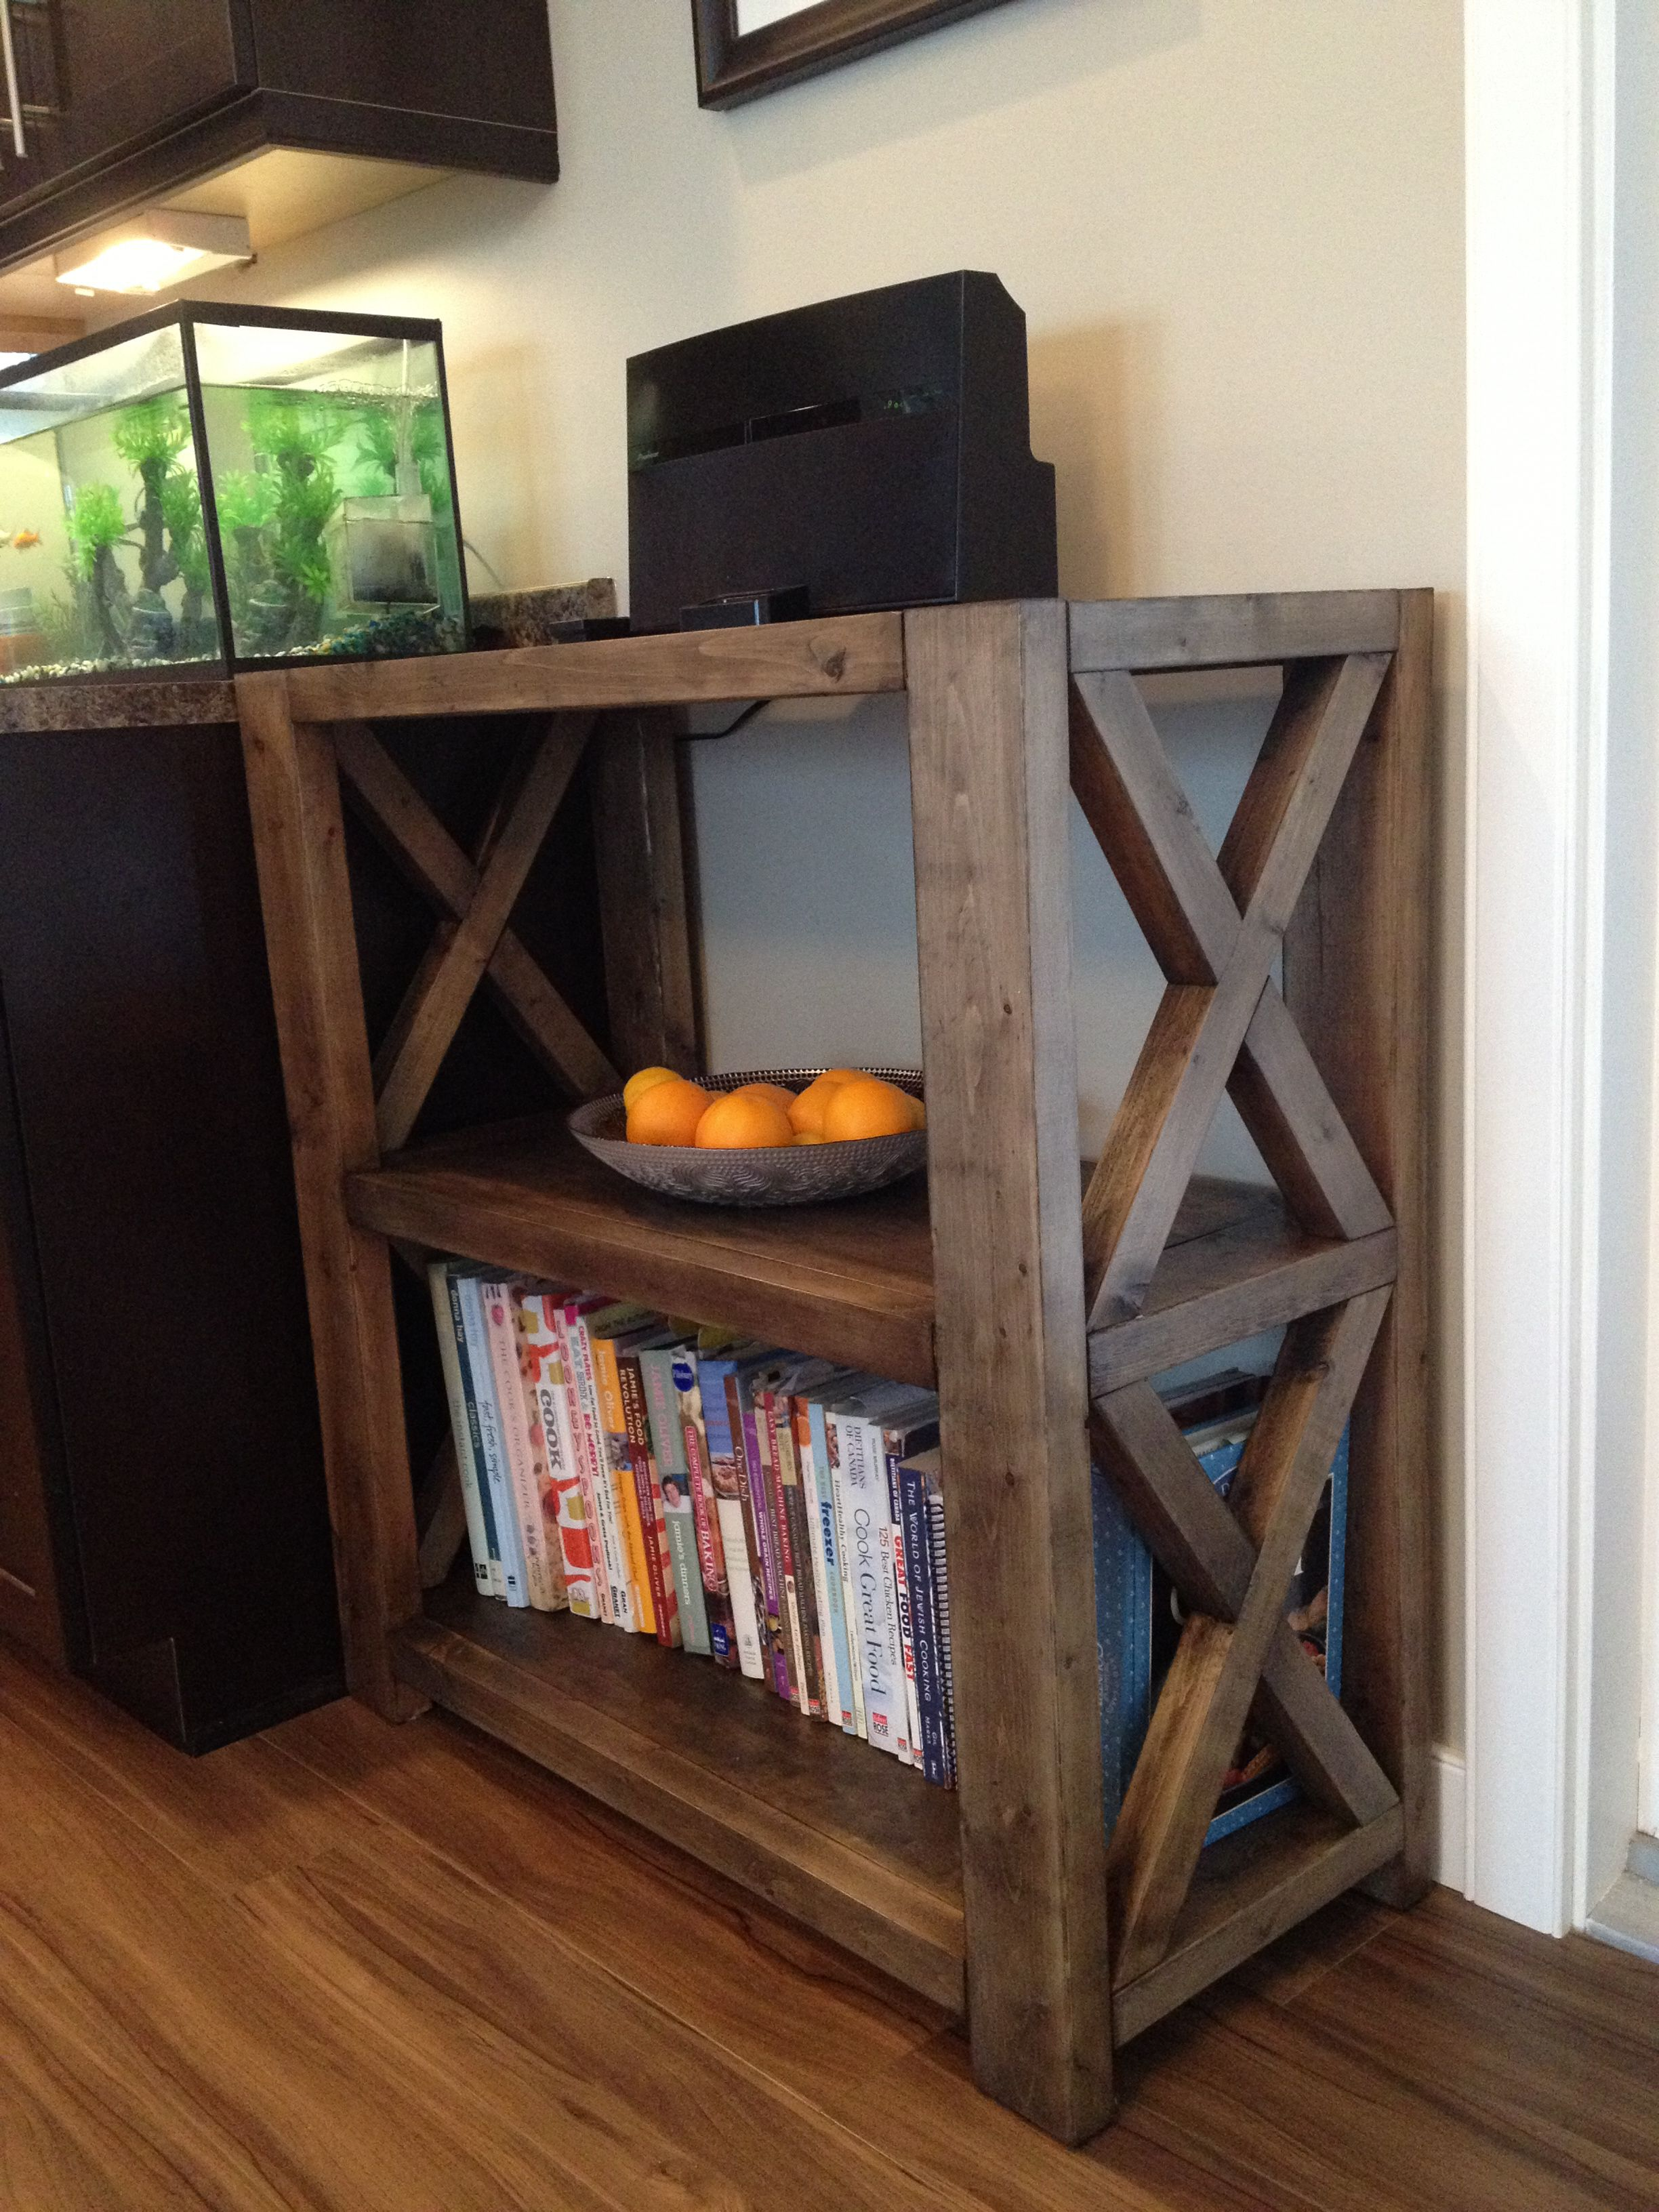 Best Rustic X Bookshelf Short Do It Yourself Home Projects 400 x 300